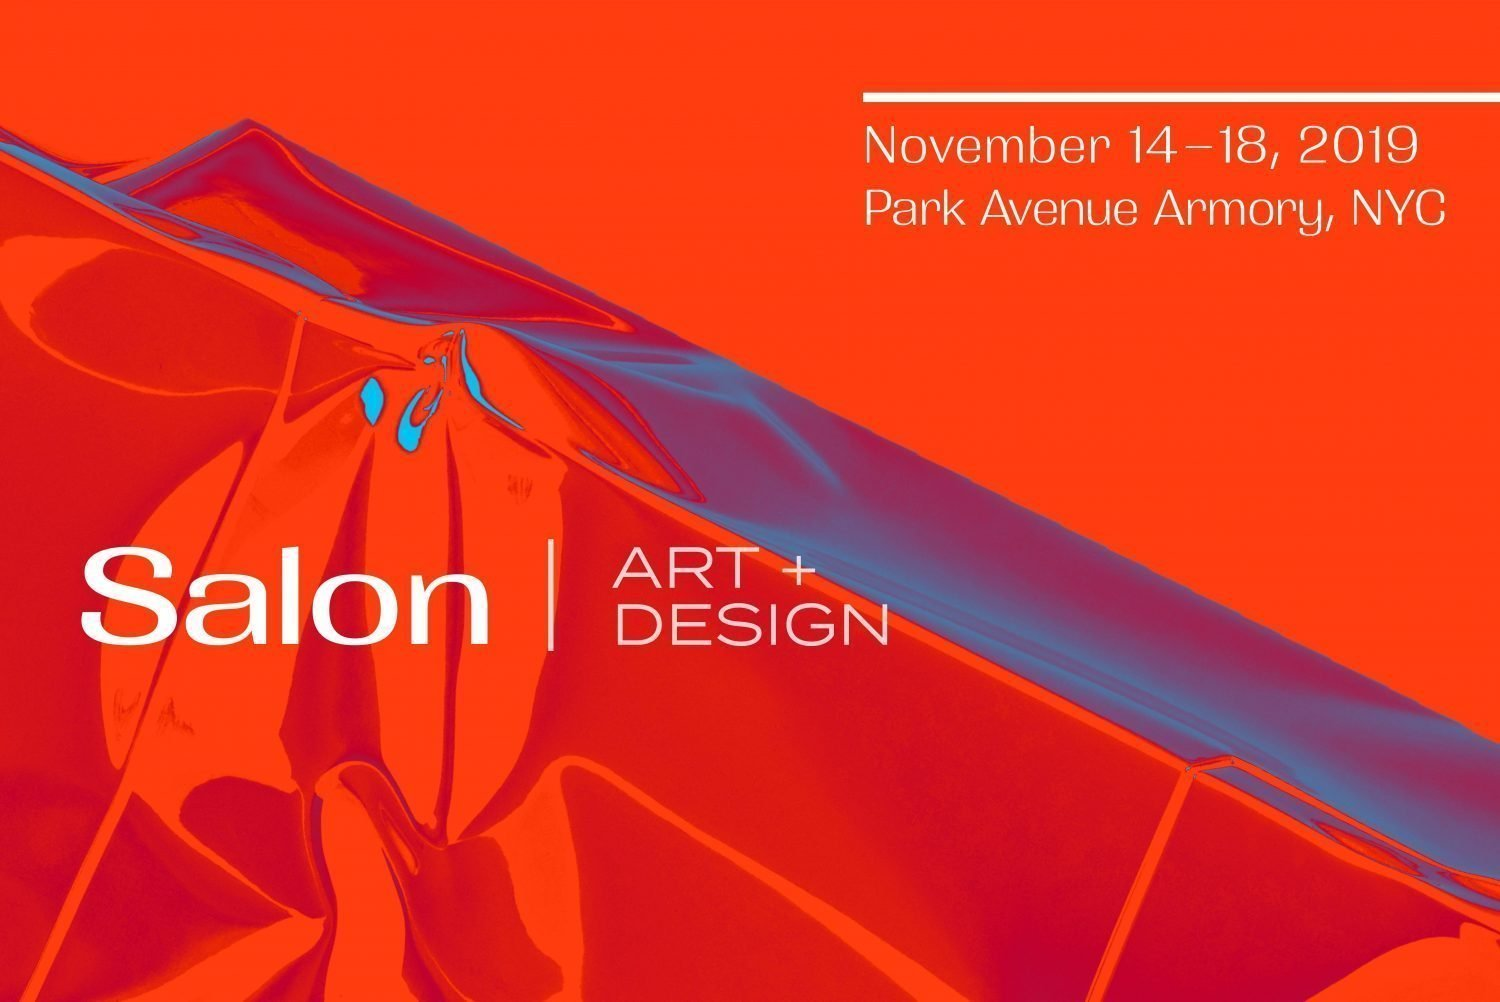 Salon Art + Design 2019 at the Park Avenue Armory NYC